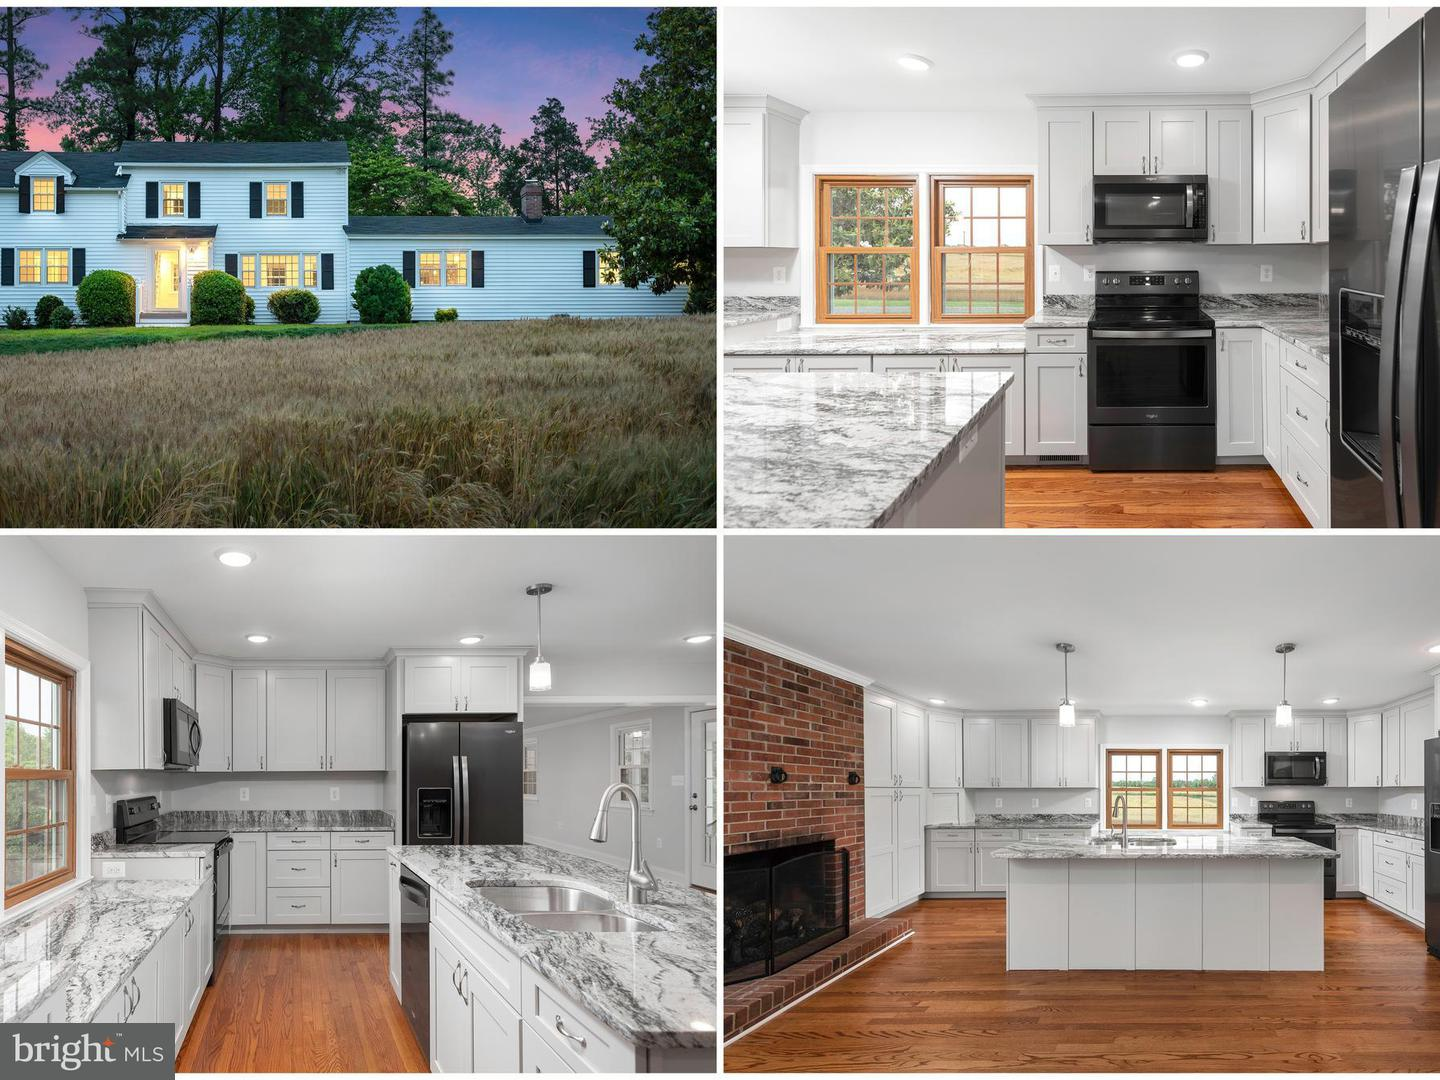 Single Family for Sale at 25179 Sparta Rd Milford, Virginia 22514 United States